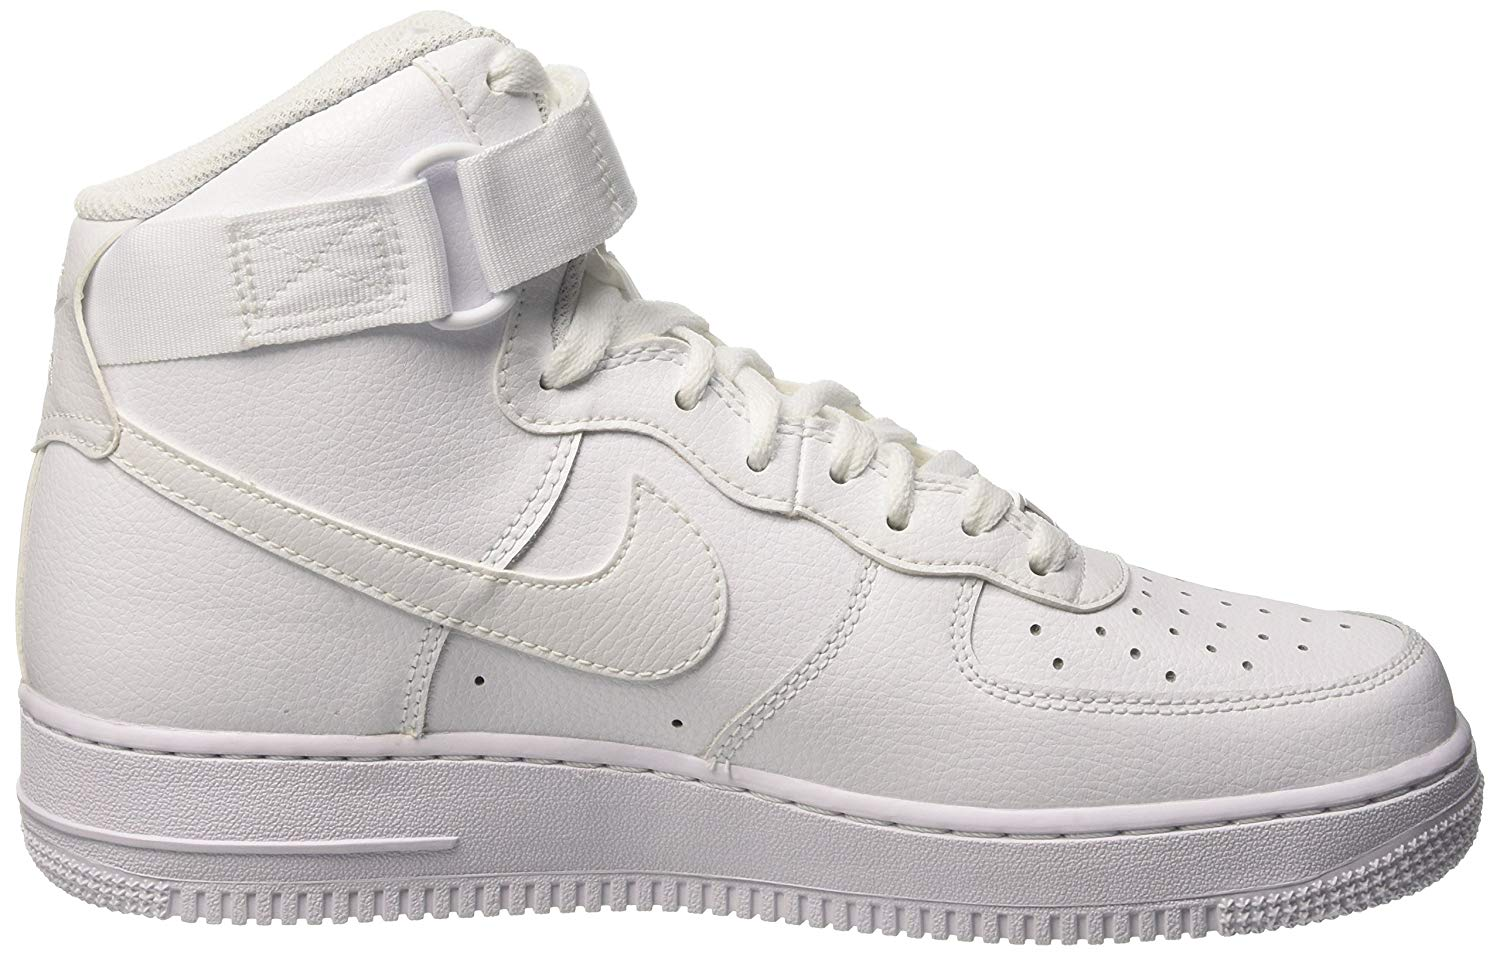 Nike Air Force 1 High Top Reviewed For Performance In 2020